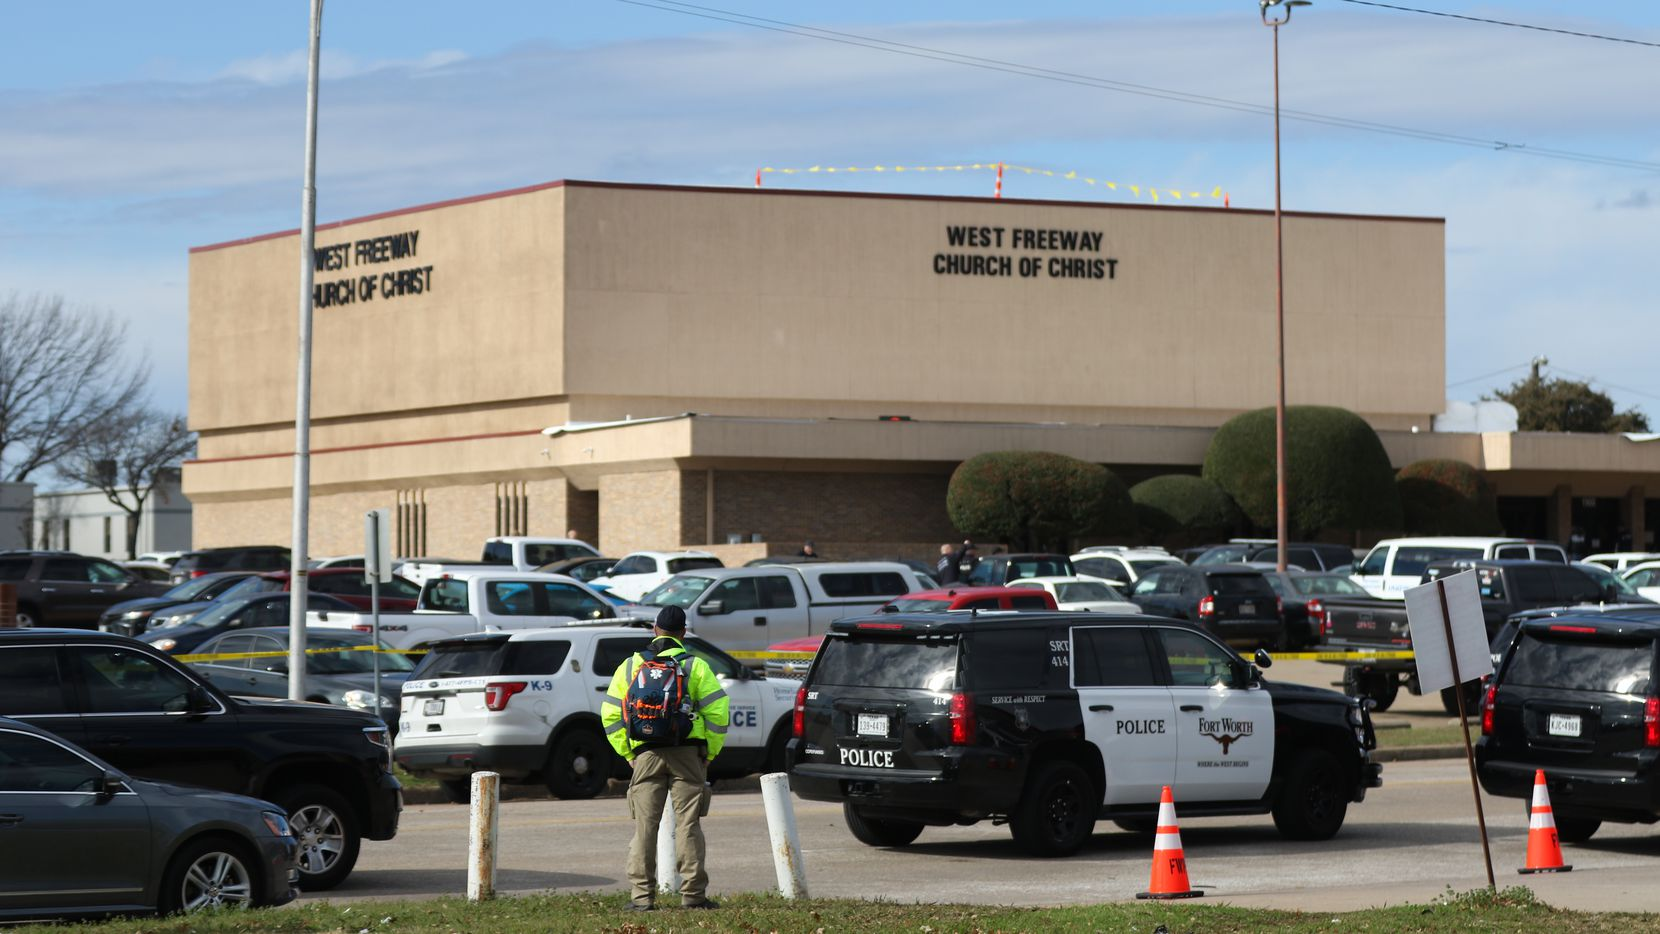 Two people are dead and another is in critical condition after a church shooting at West Freeway Church of Christ on Dec. 29, 2019 in White Settlement. (Juan Figueroa/ The Dallas Morning News)